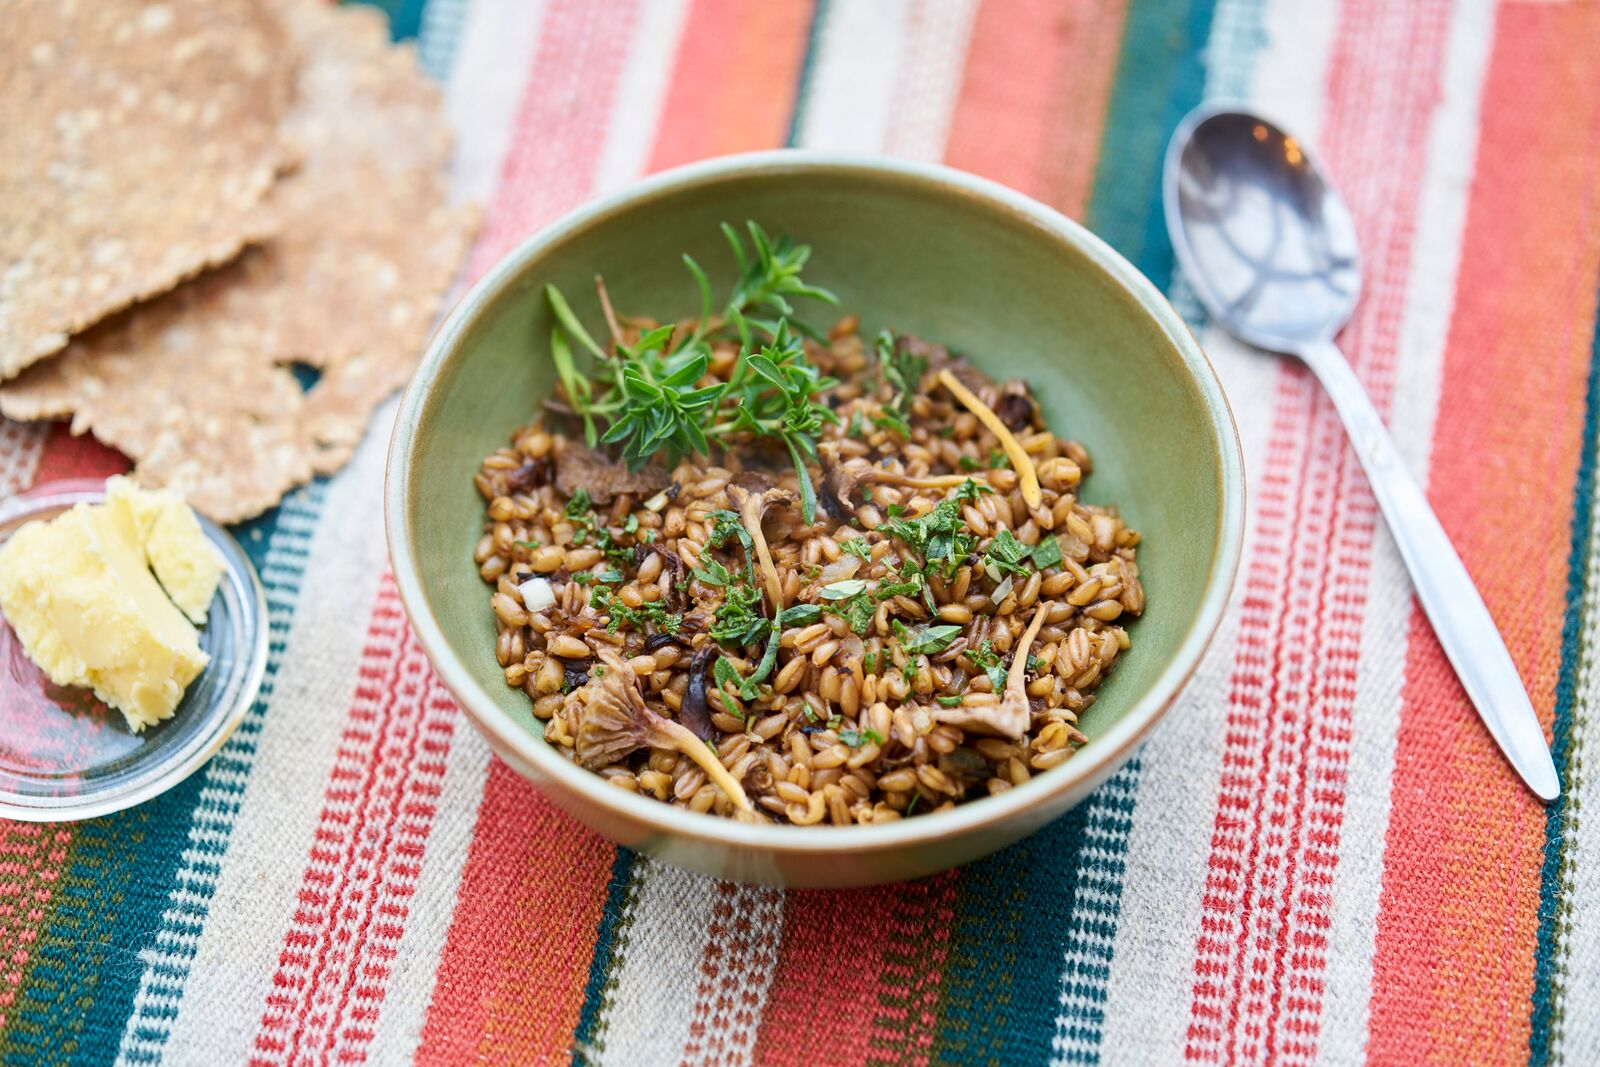 Warm spelt-salad with kale, mushrooms and apple. Photo: Alexander Benjaminsen